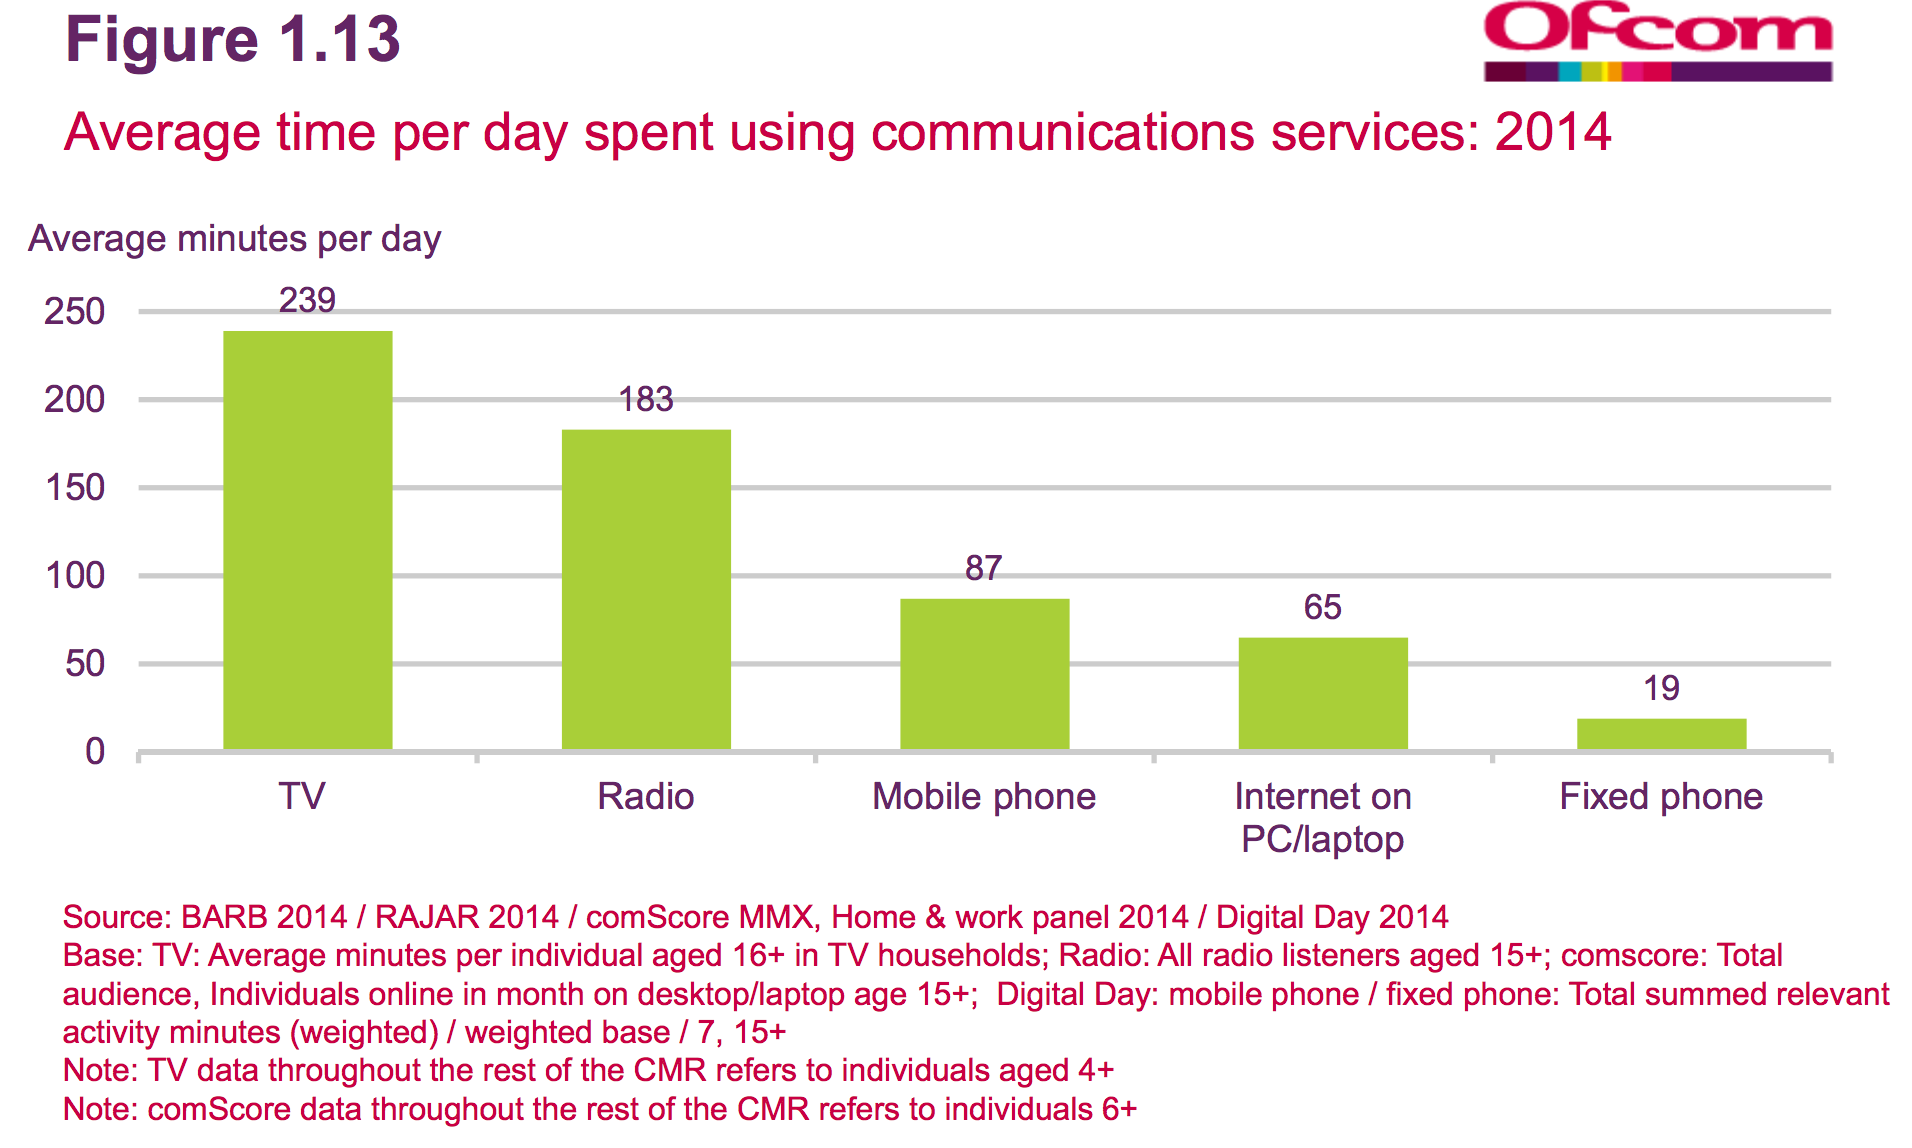 time spent on different media in the UK